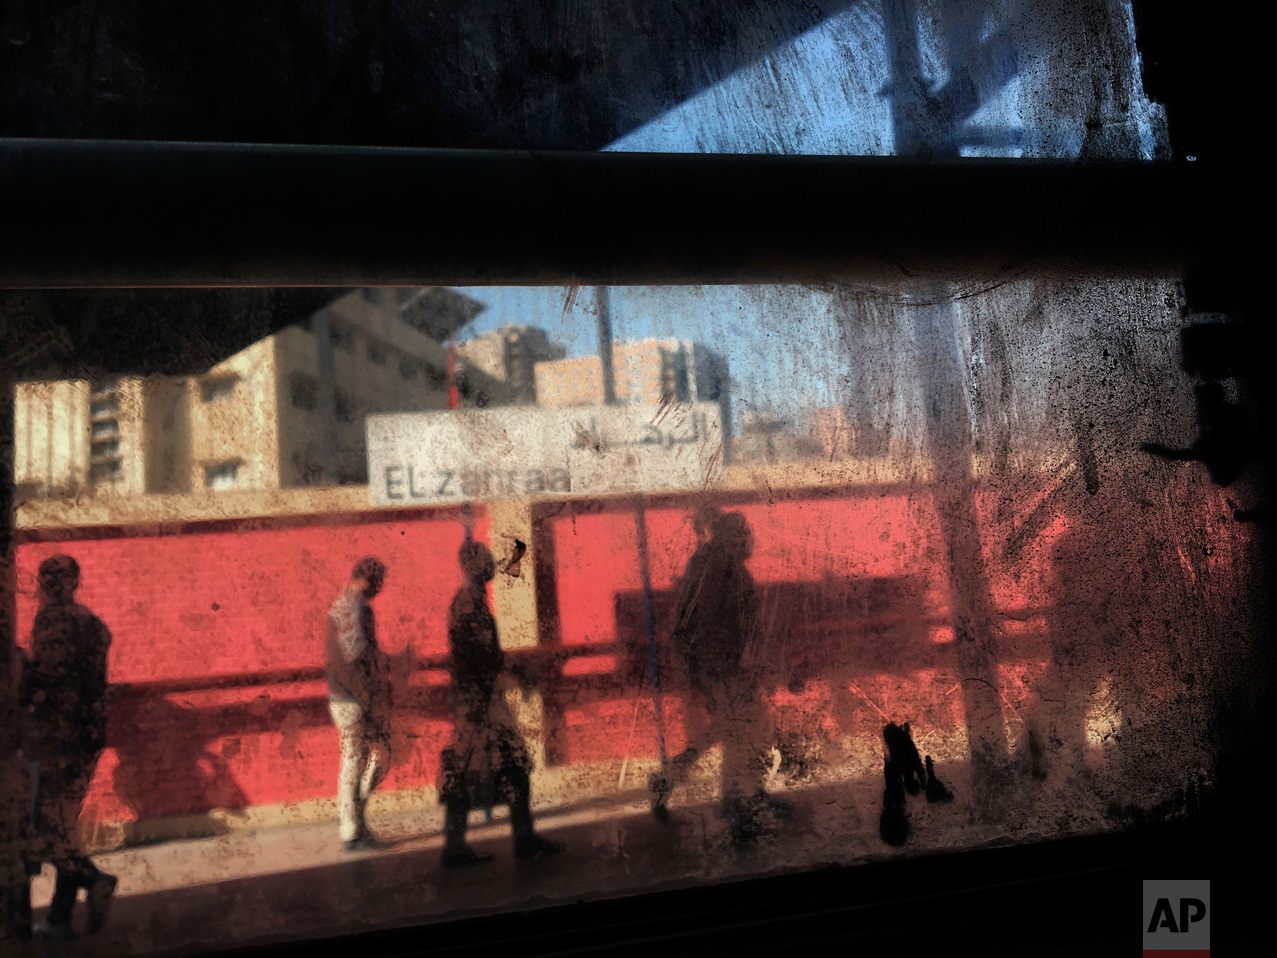 In this March 13, 2017 photo, people are seen from the window of a metro car, at El Zahraa metro station in Cairo, Egypt. (AP Photo/Nariman El-Mofty)